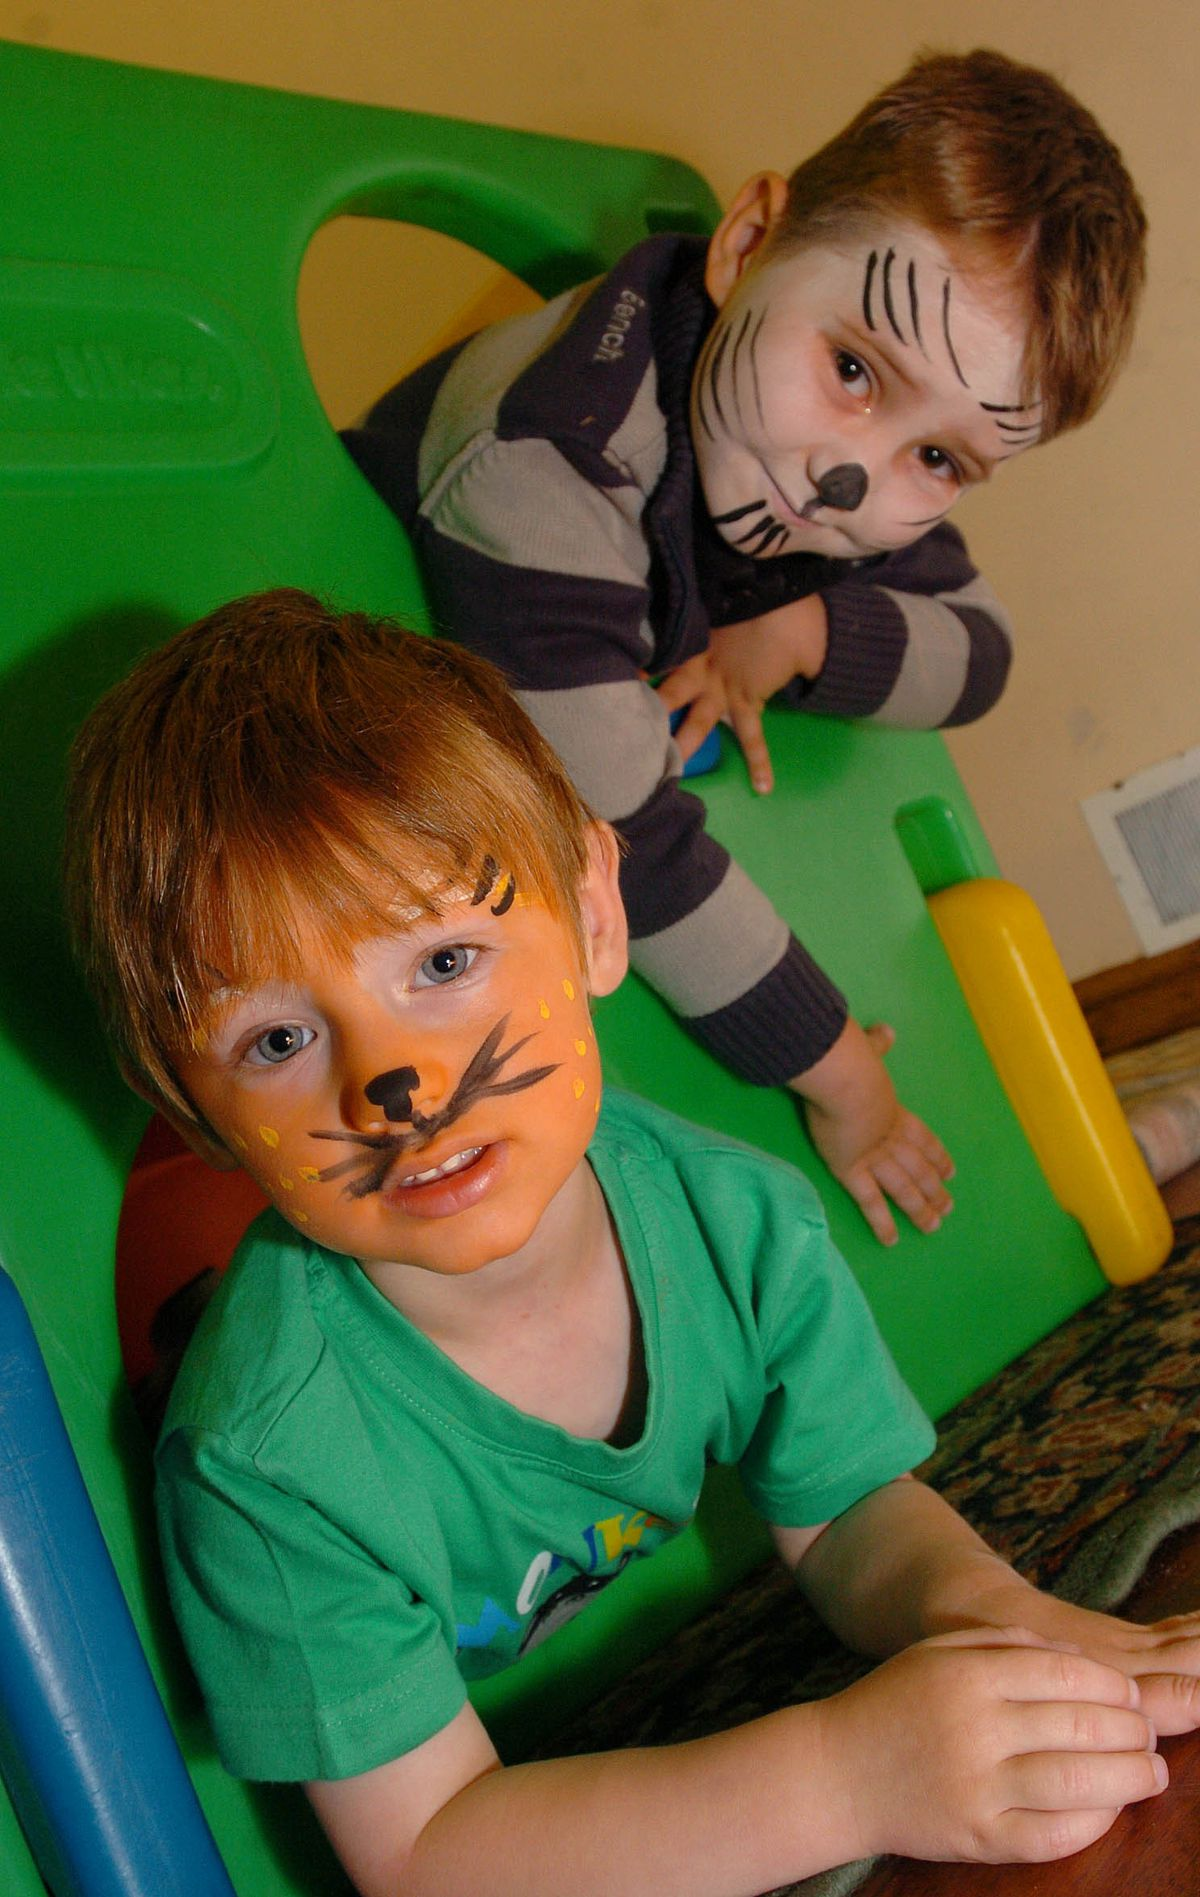 Ryan Peevor, then aged three and Josh Glapa, aged four, at Ketley Methodist Parent and Toddler Group in 2009.